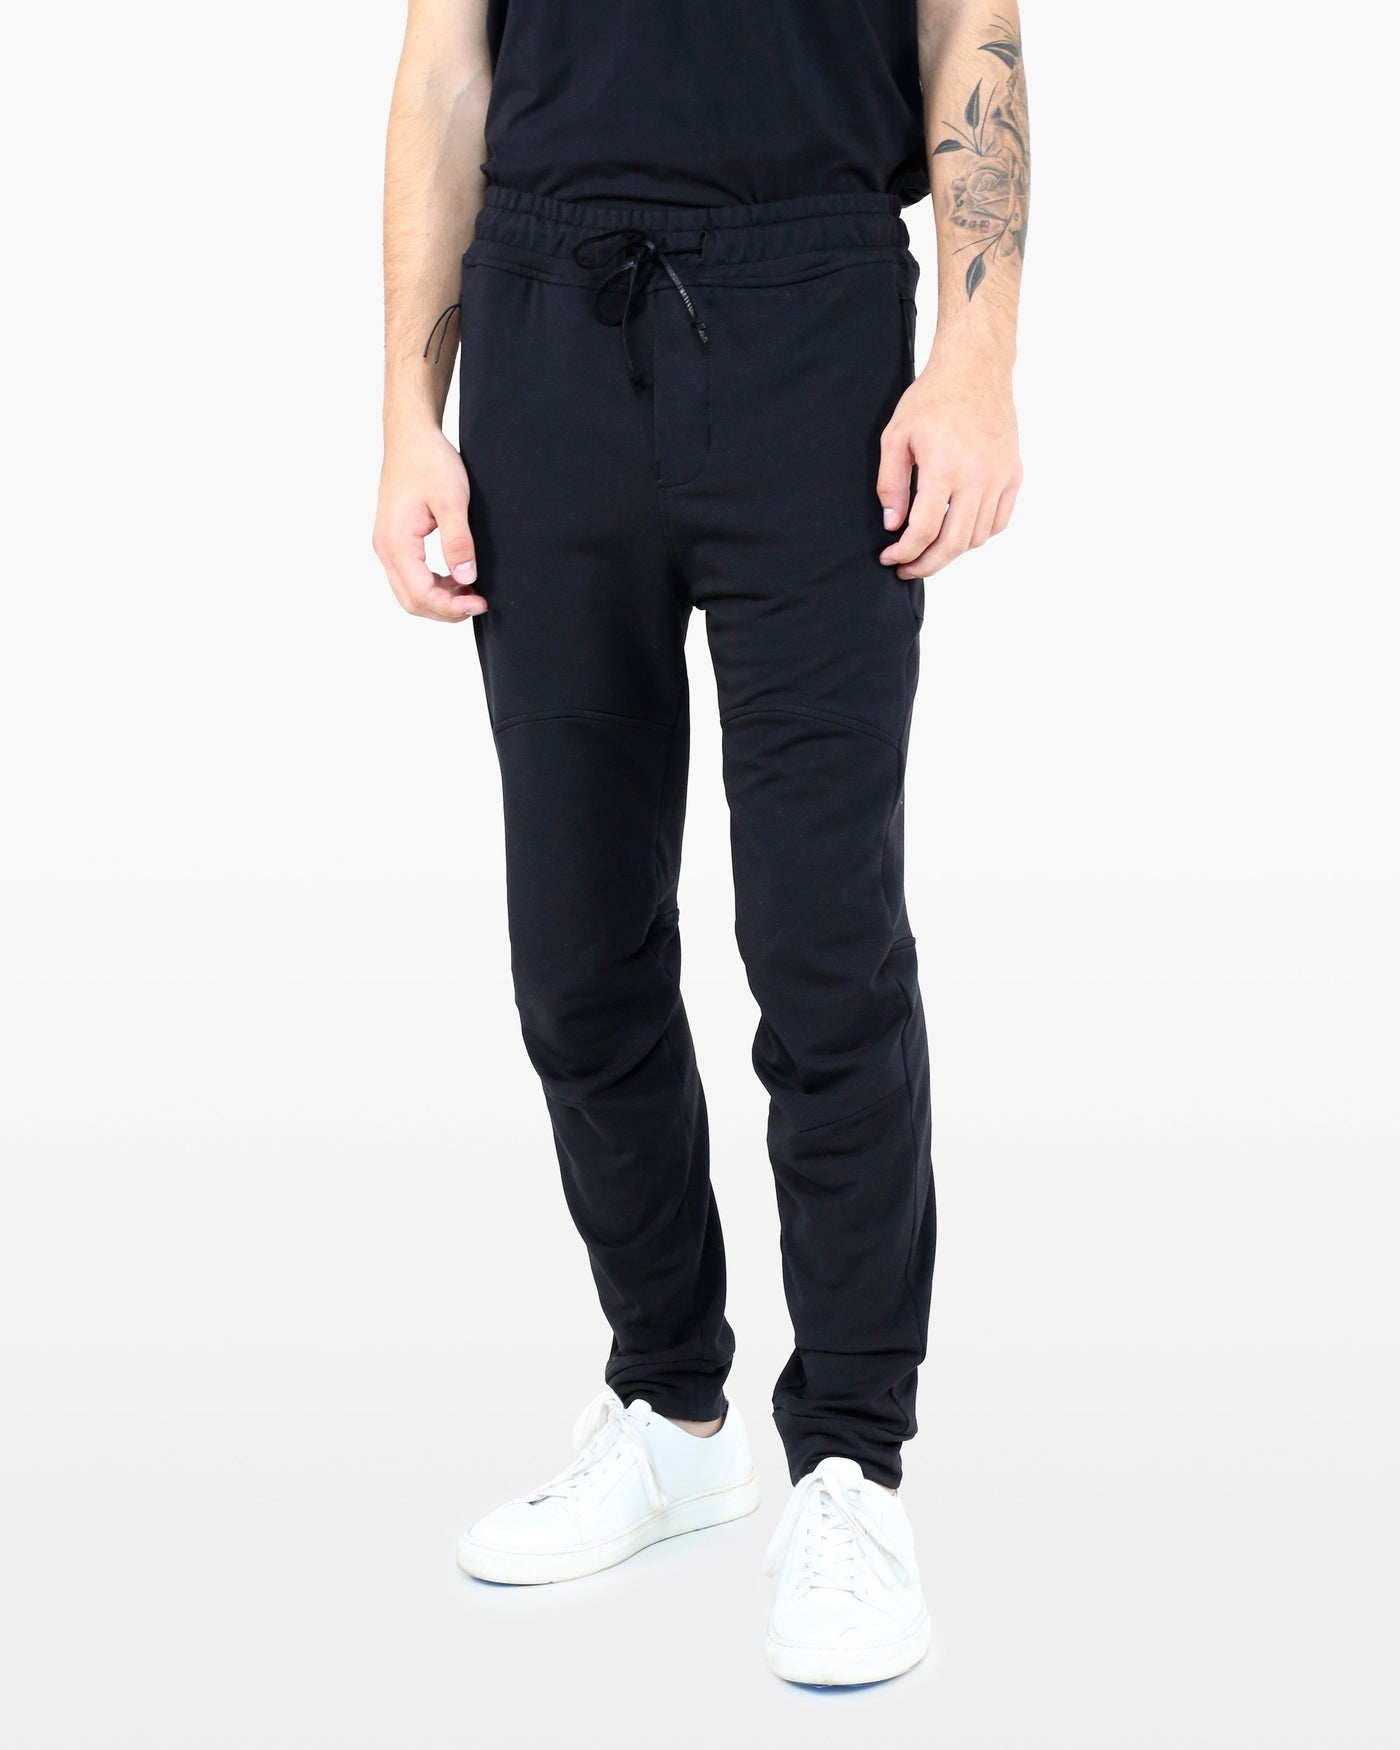 Copernicus Pant DTT in black